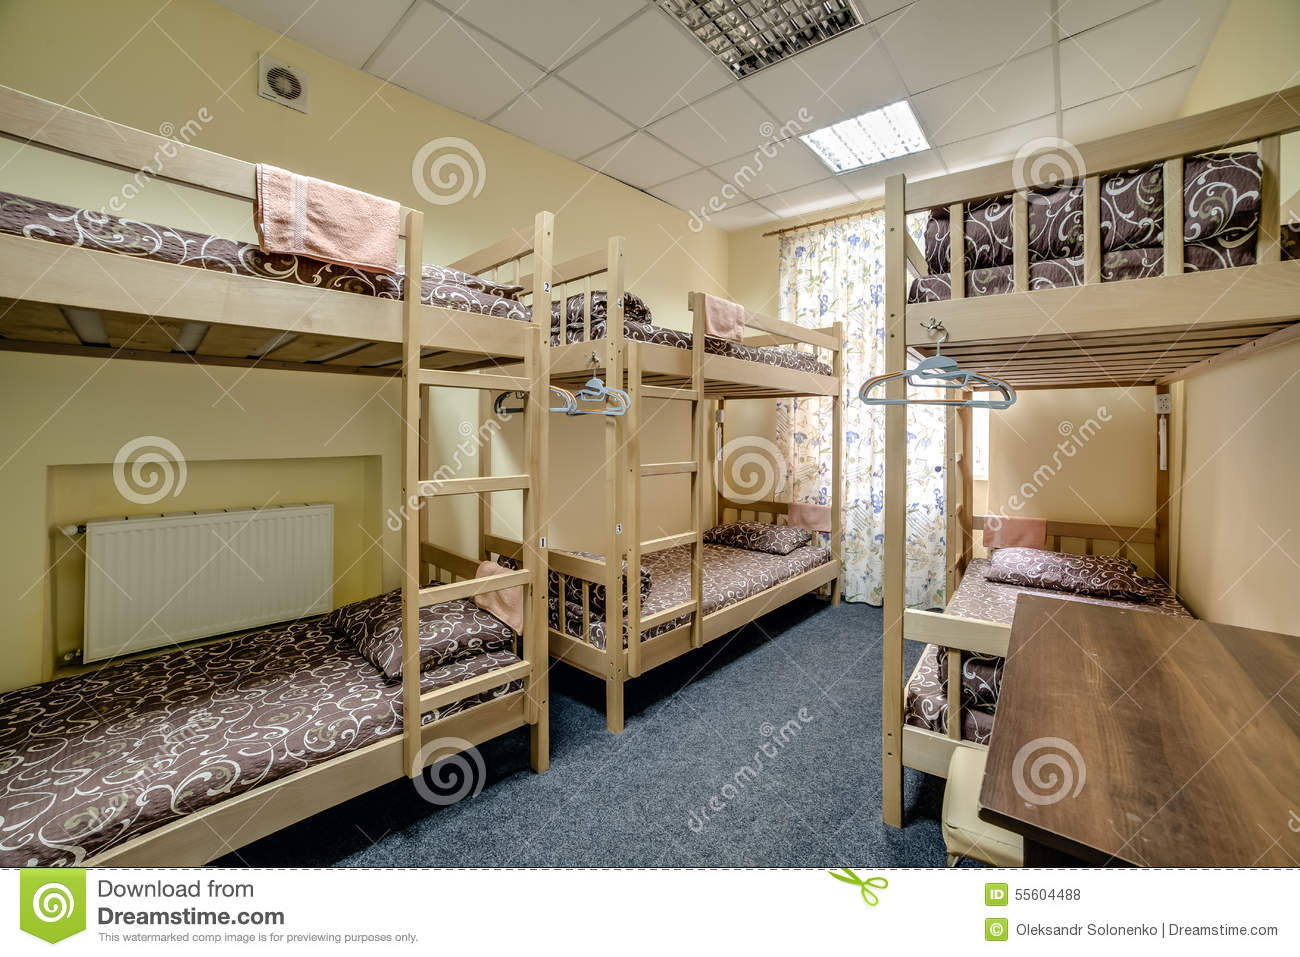 Small Hostel Room With Bunk Beds Stock Photo Image 55604488